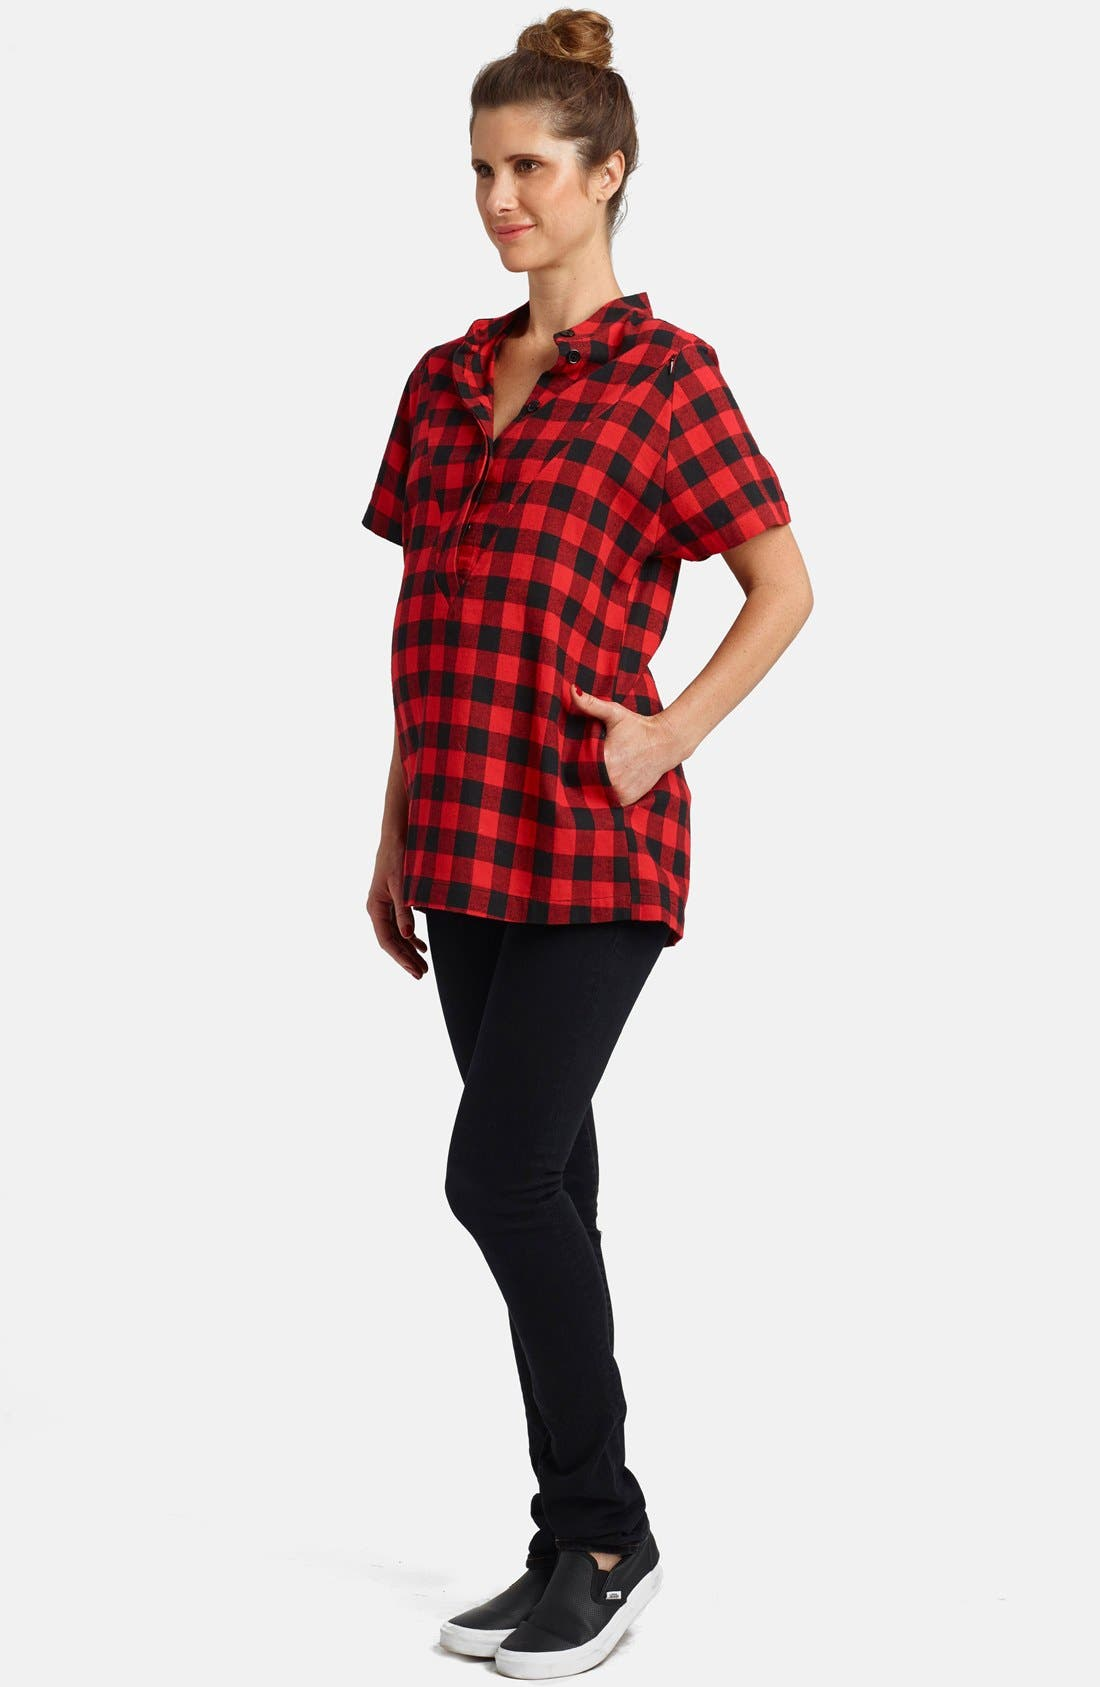 Alternate Image 1 Selected - Loyal Hana Short Sleeve Flannel Maternity/Nursing Top